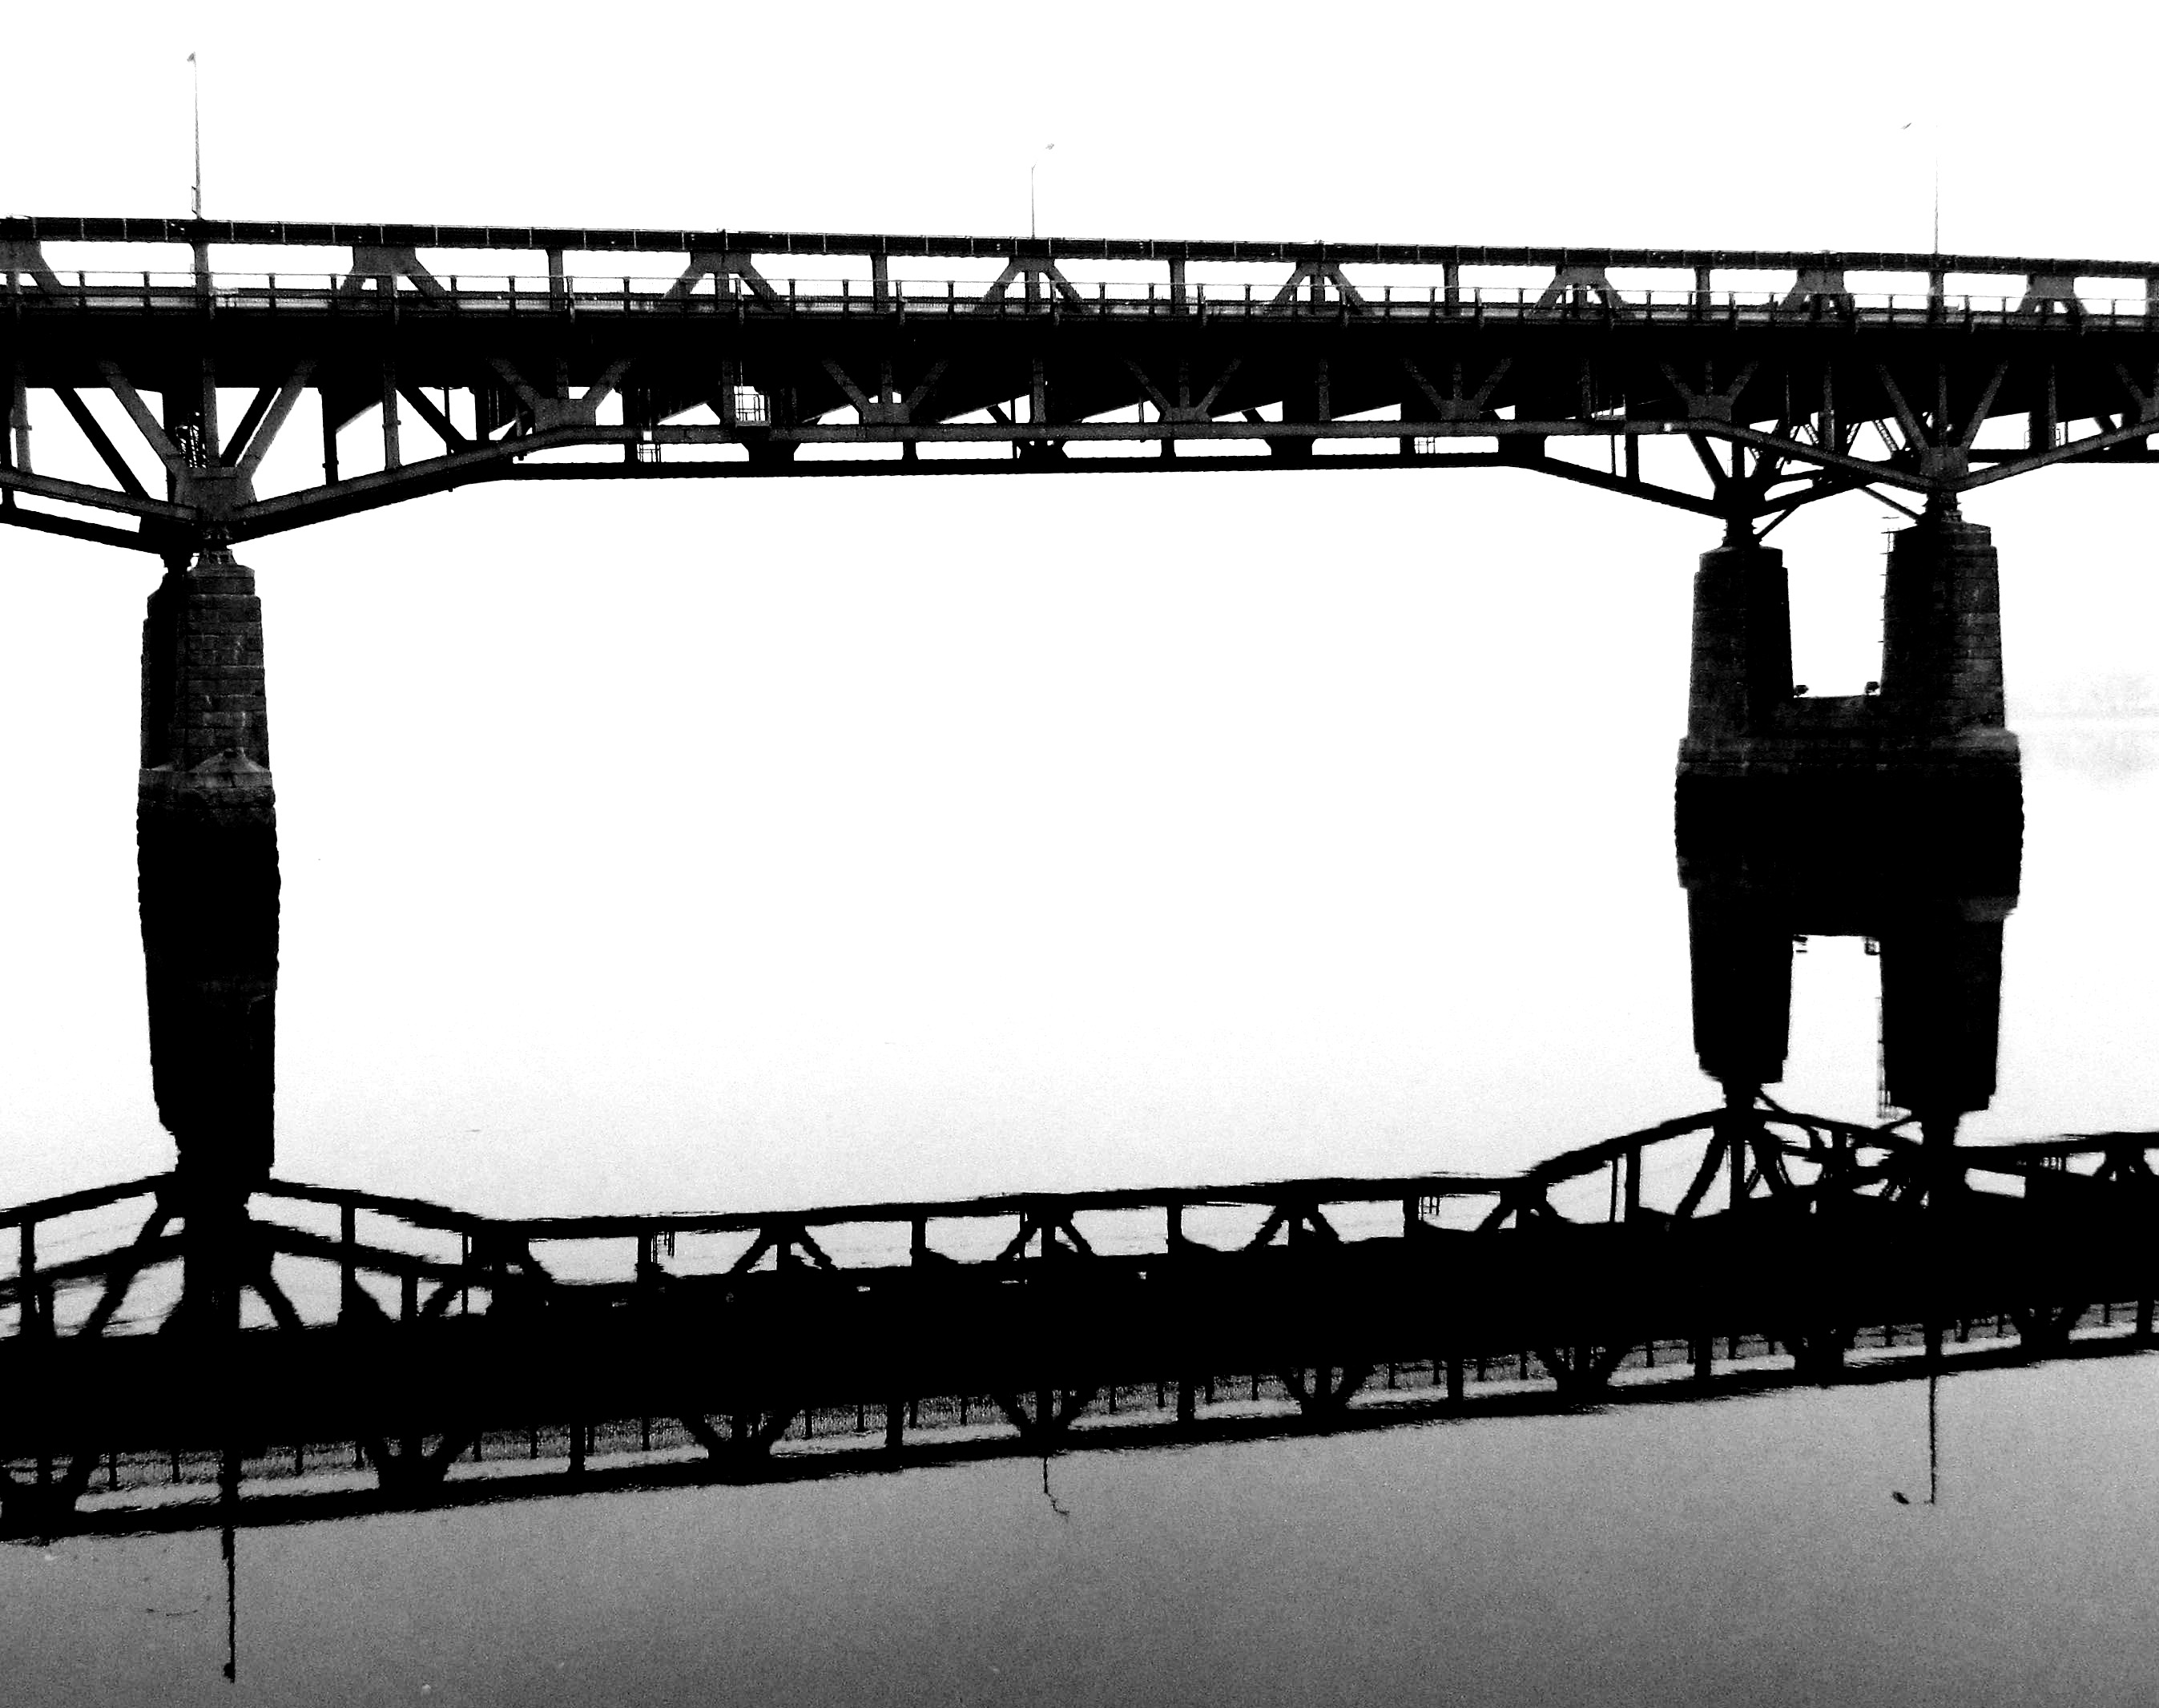 Tacony Bridge Span Reflection Silhouette